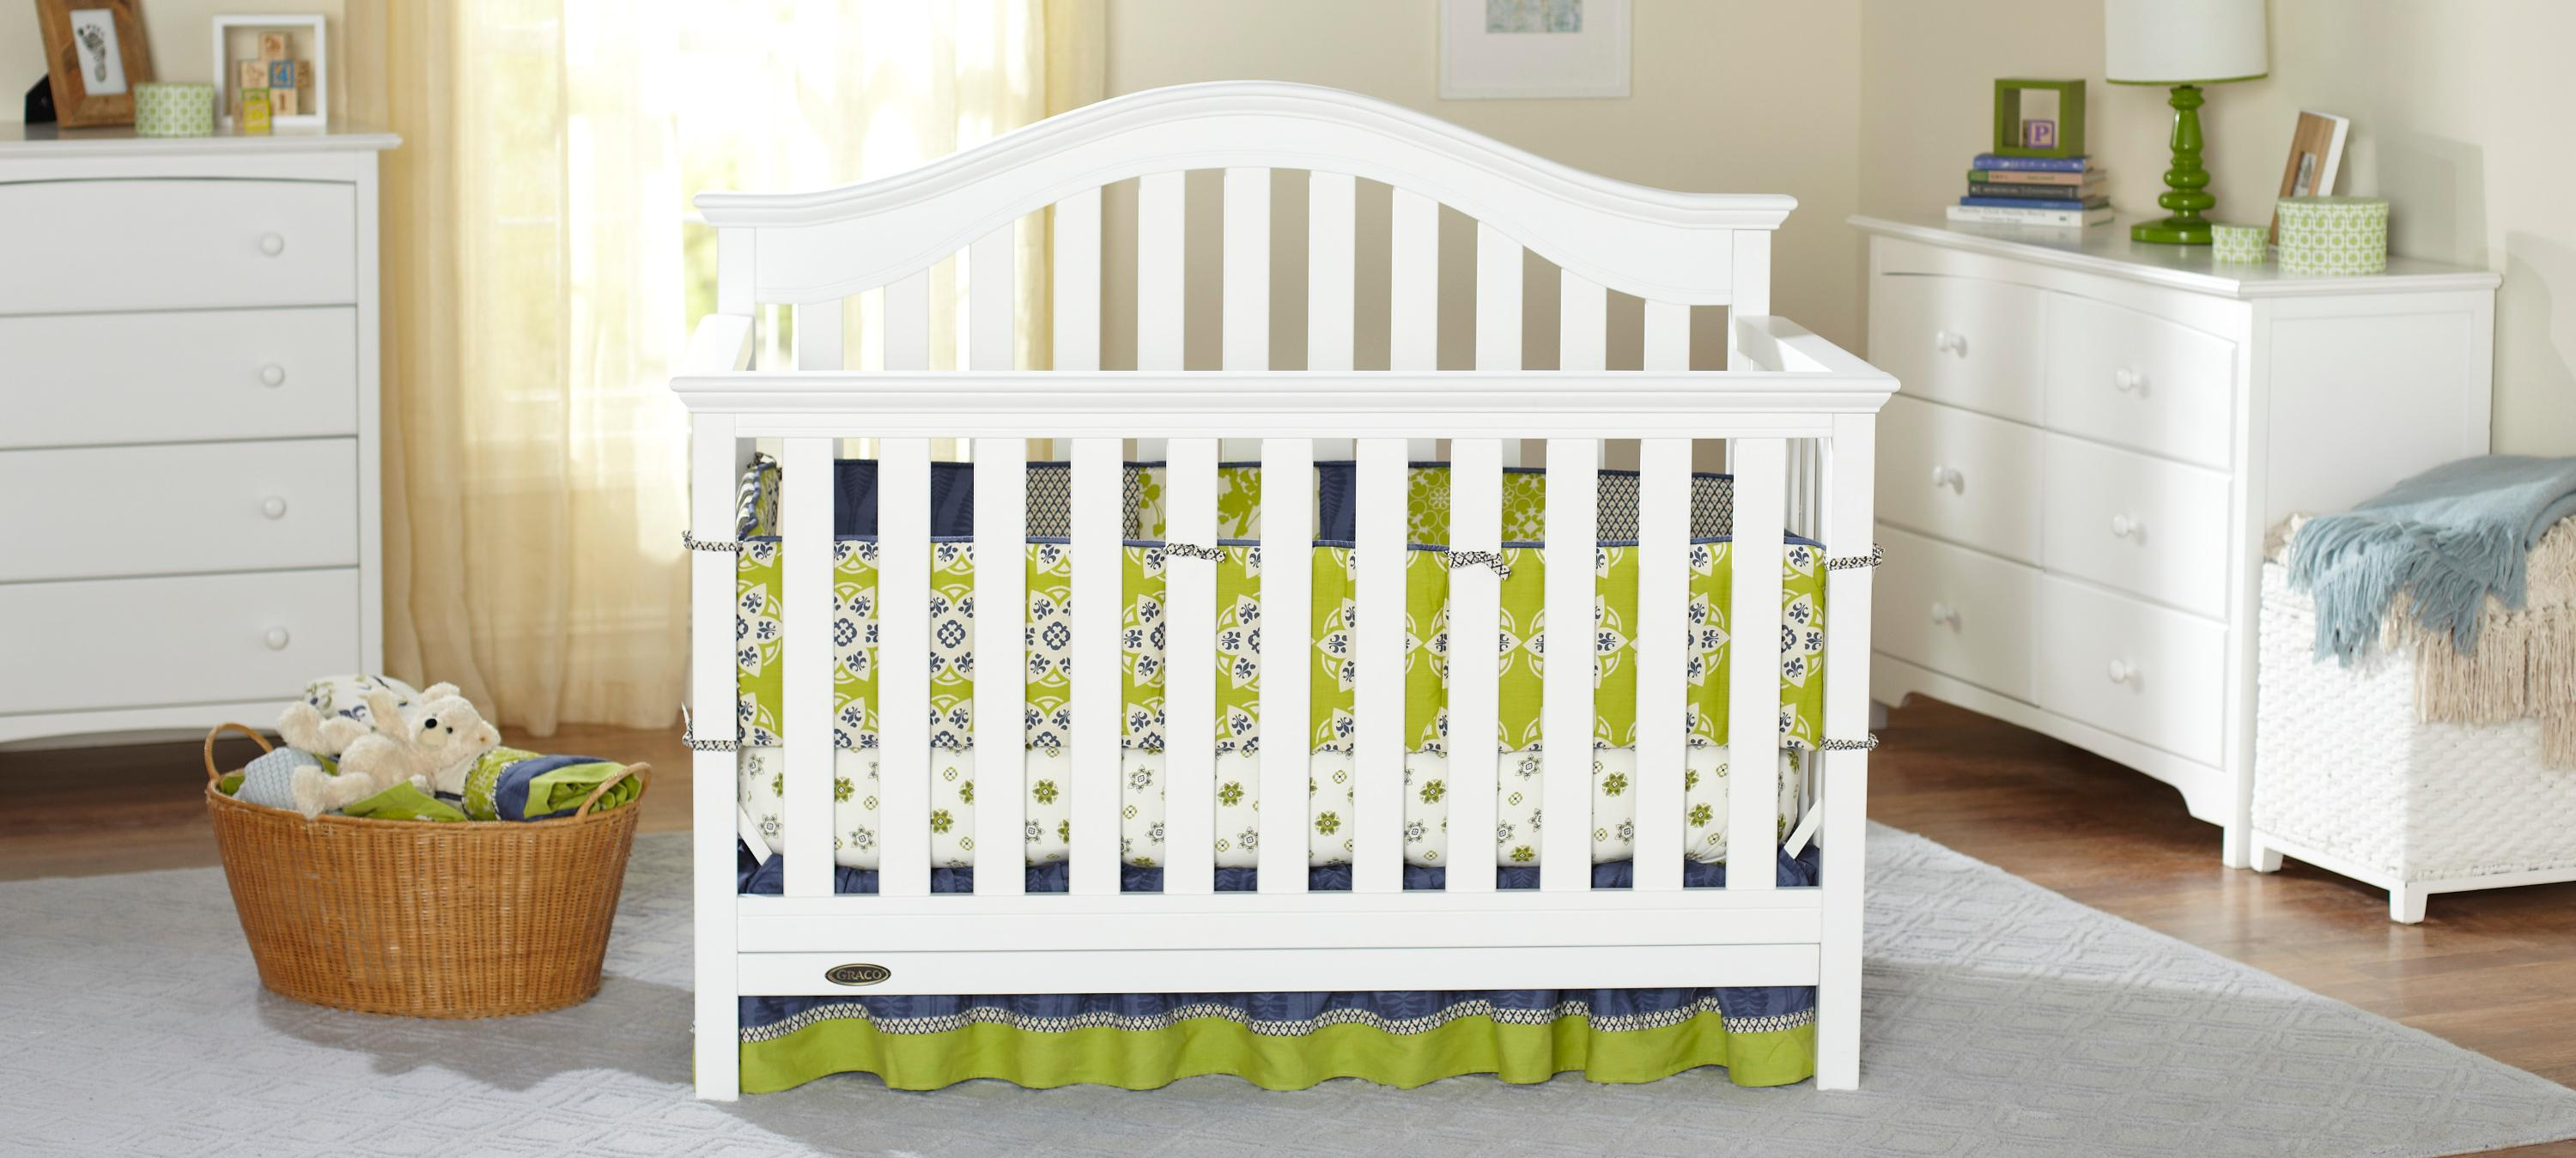 carters crib bed pdp s carter by baby wayfair davinci kids taylor into reviews in ca turns convertible